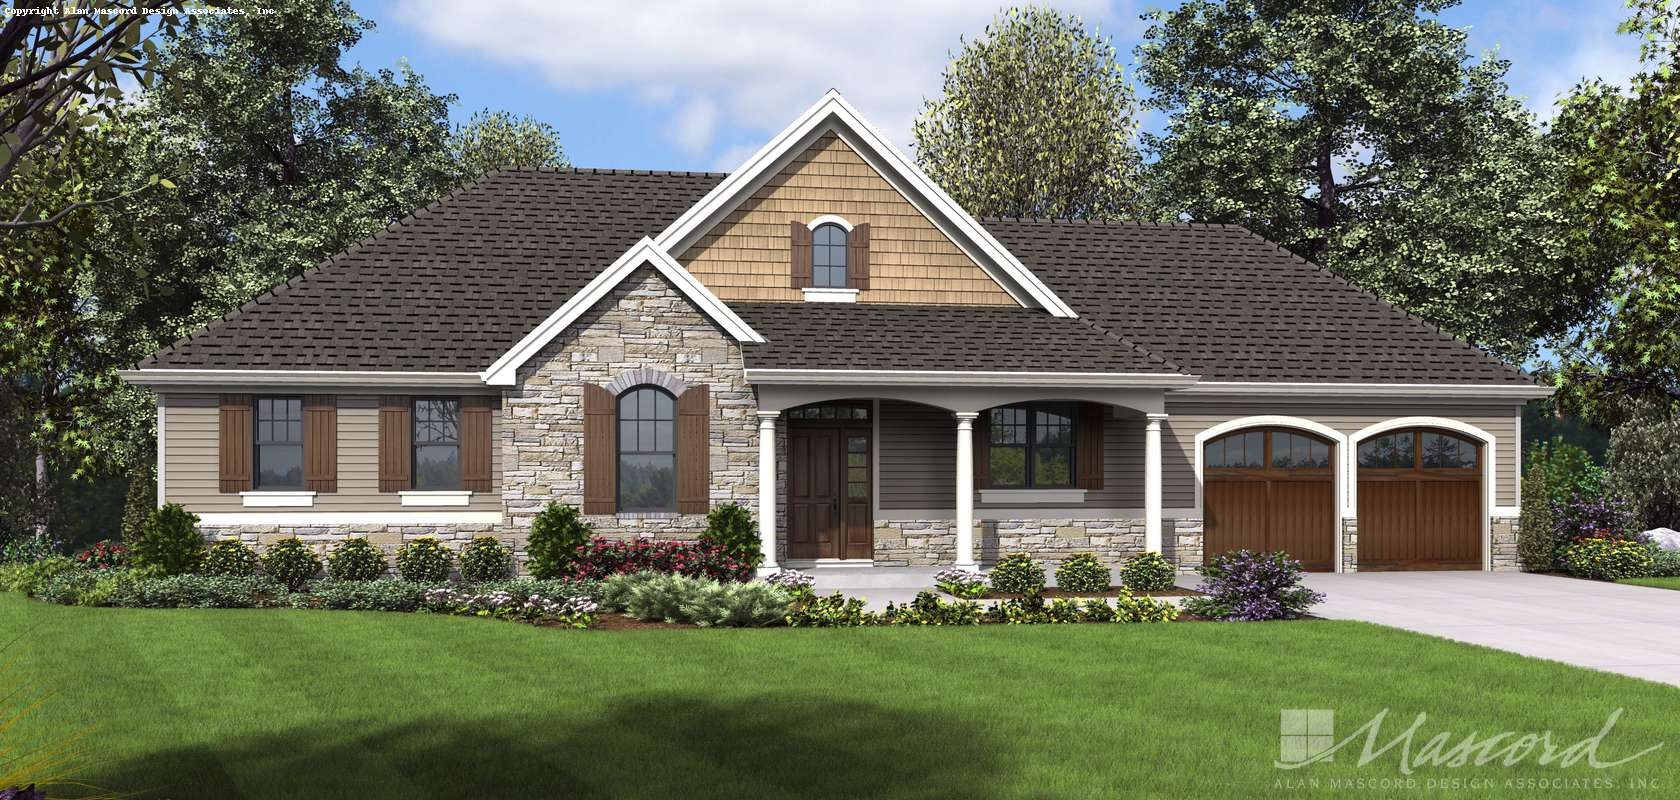 Mascord House Plan 1257: The Sunnydale